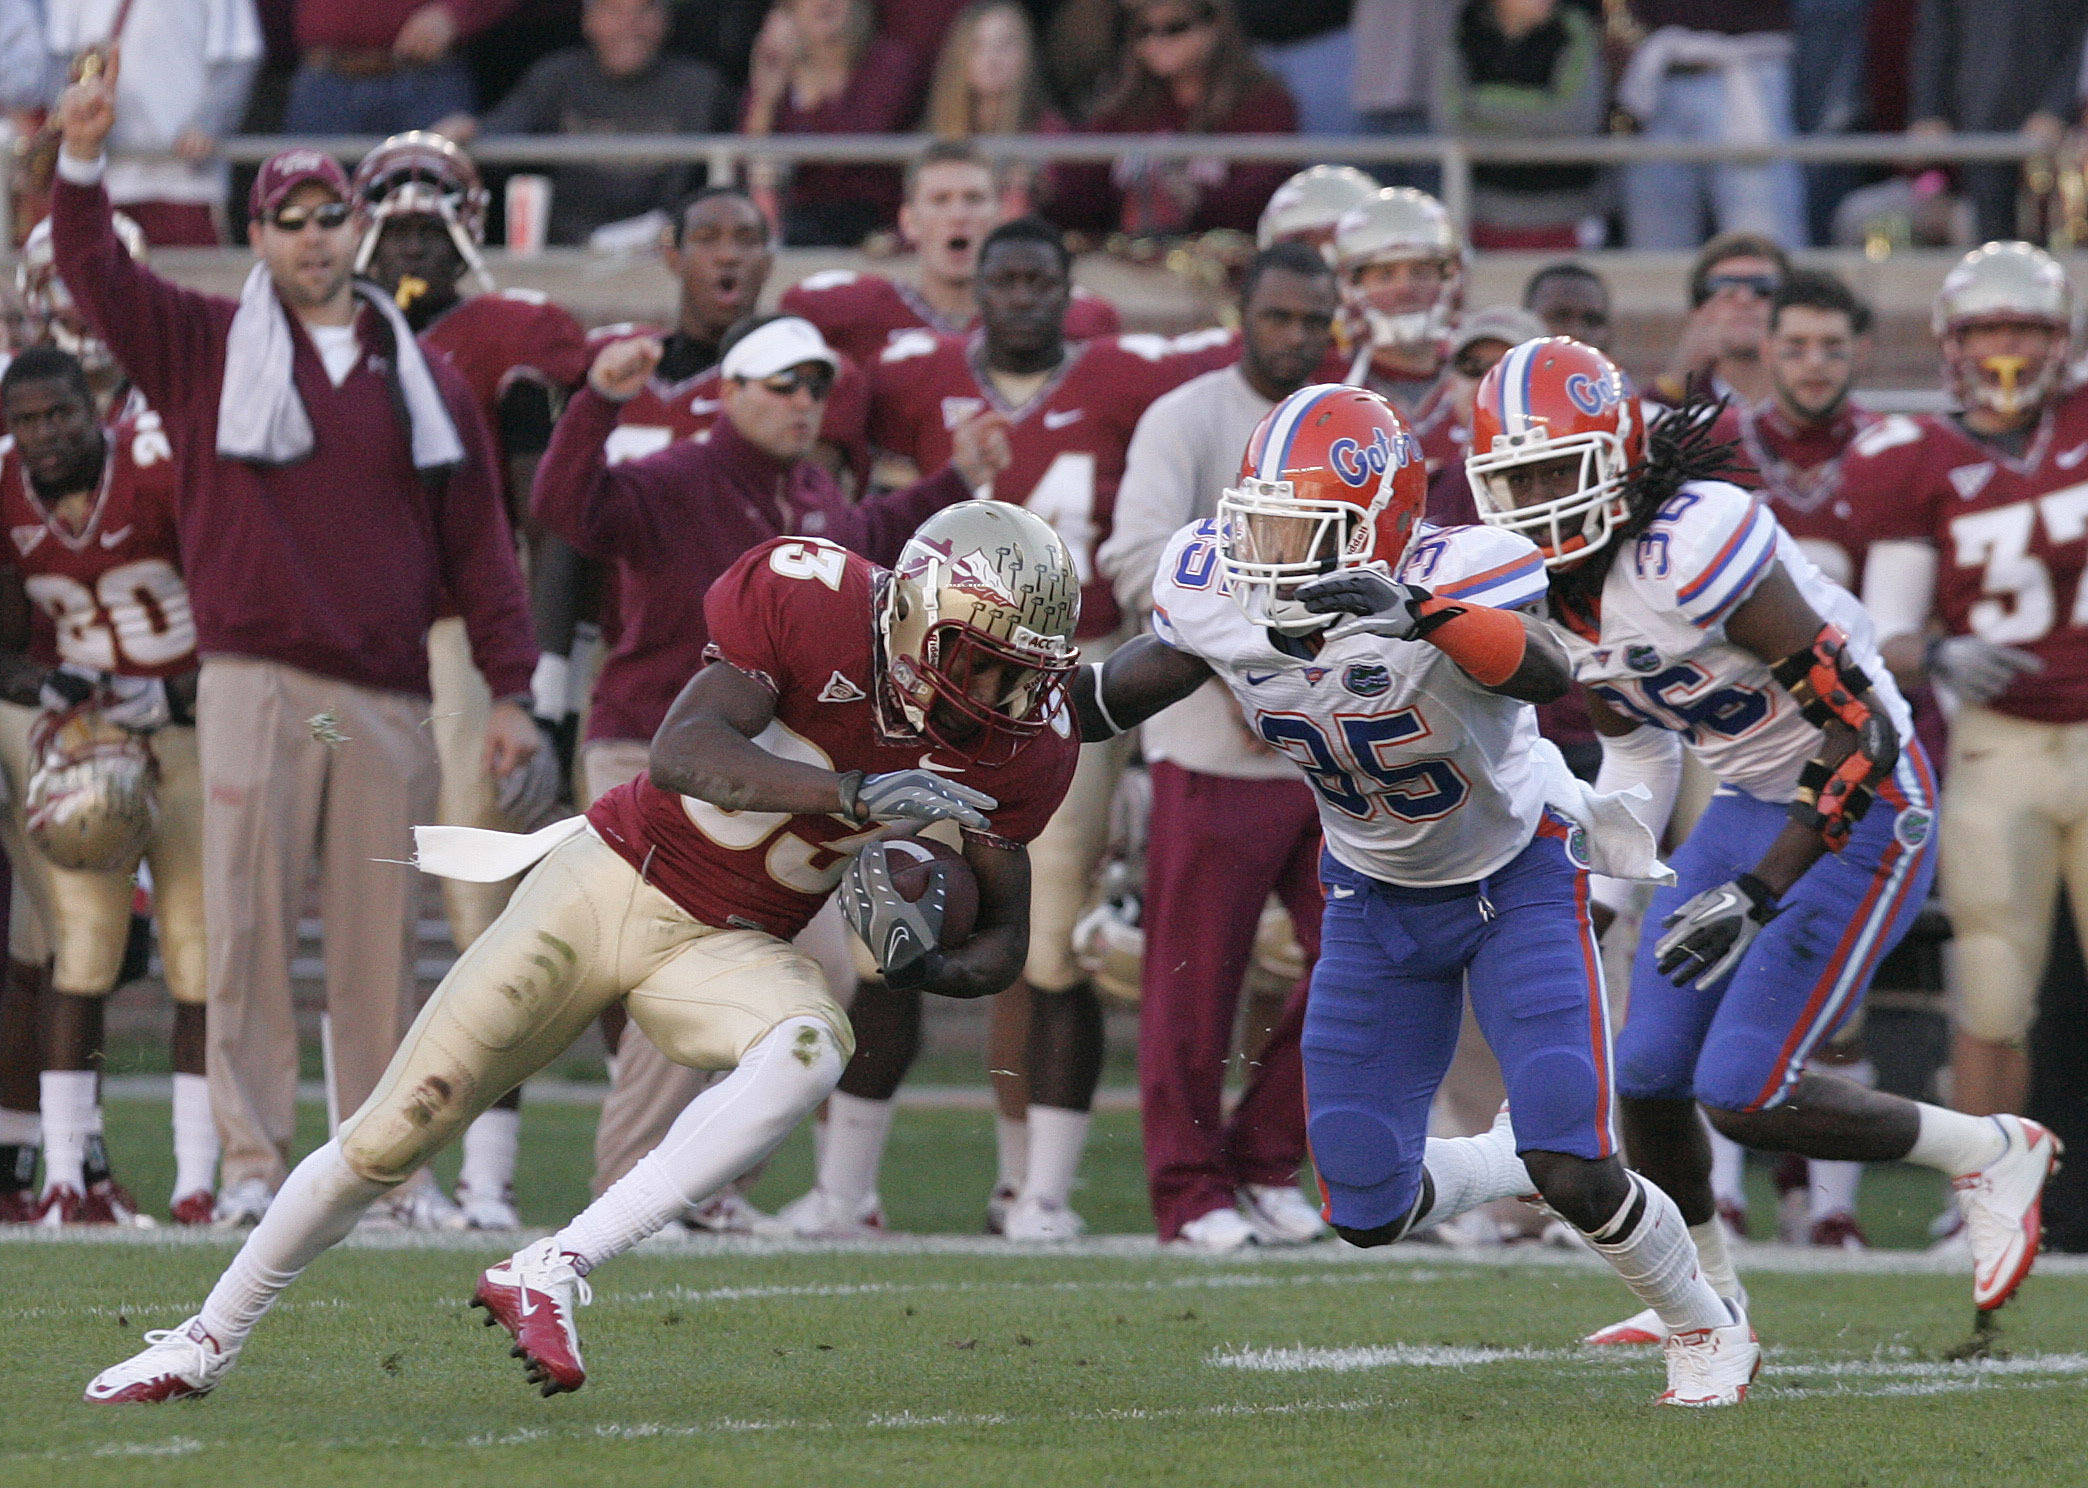 Florida State's Bert Reed turns upfield after making a reception as Florida's  Ahmad Black, center, and Moses Jenkins move in for the tackle in the first quarter of an NCAA college football game Saturday, Nov. 27, 2010, in Tallahassee, Fla.(AP Photo/Steve Cannon)